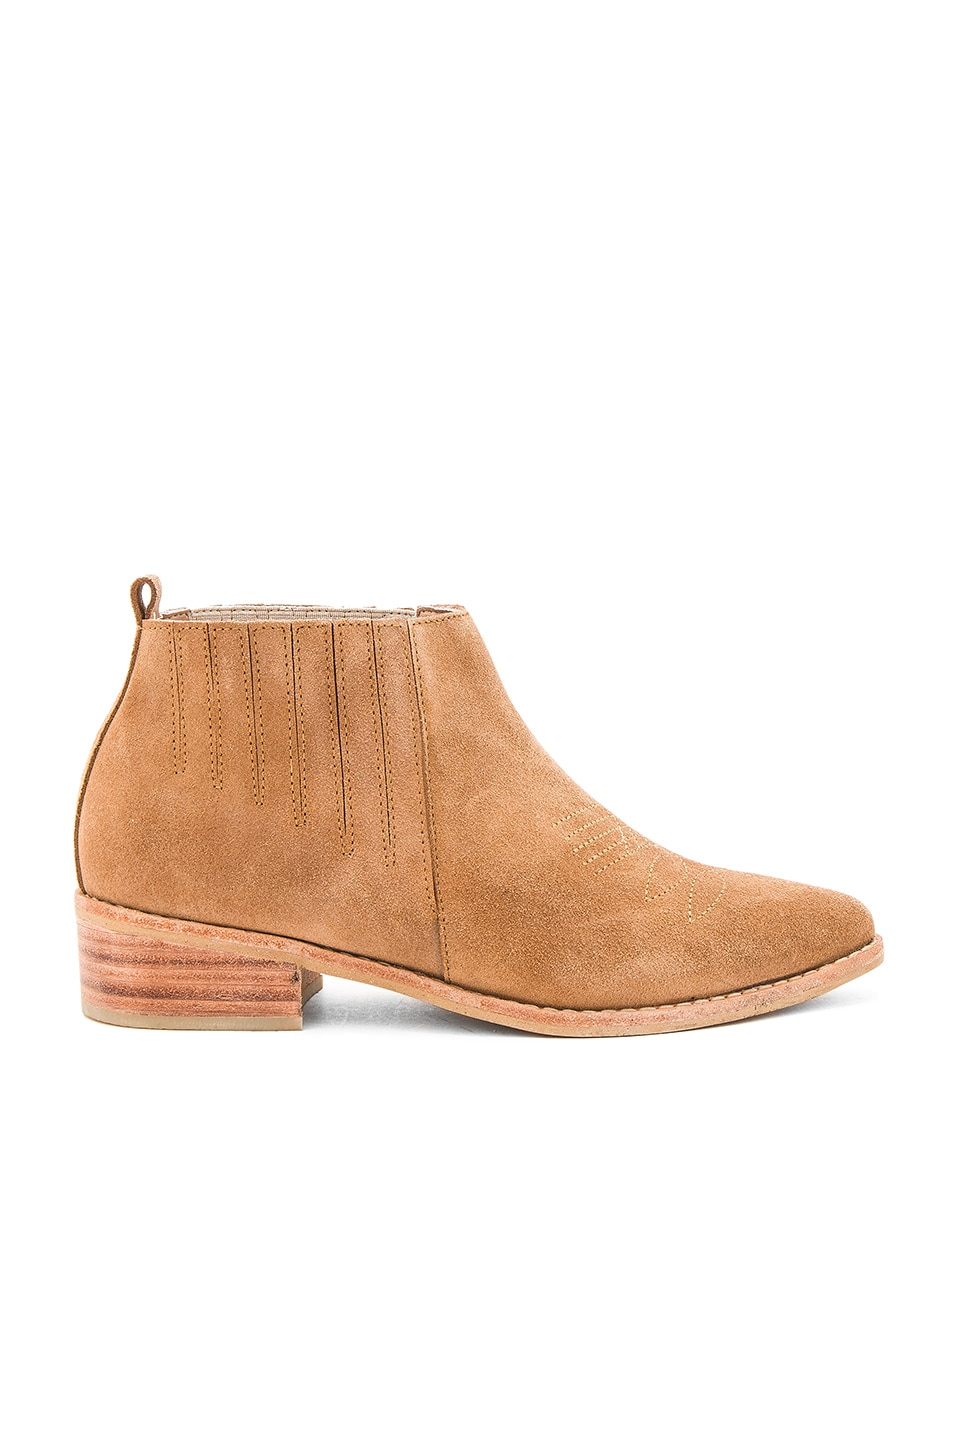 Kaanas Havasu Booties in Camel